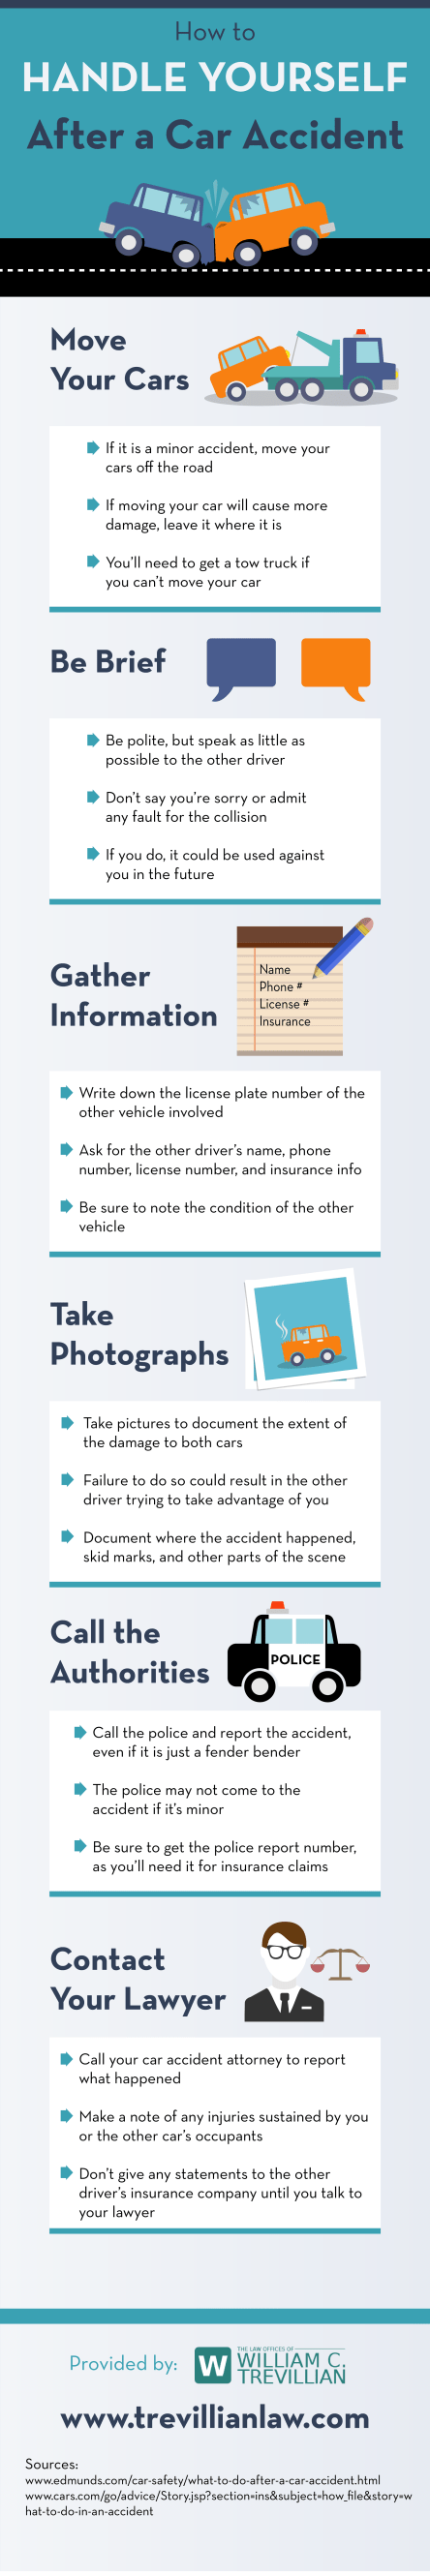 How to Handle Yourself After a Car Accident [INFOGRAPHIC]